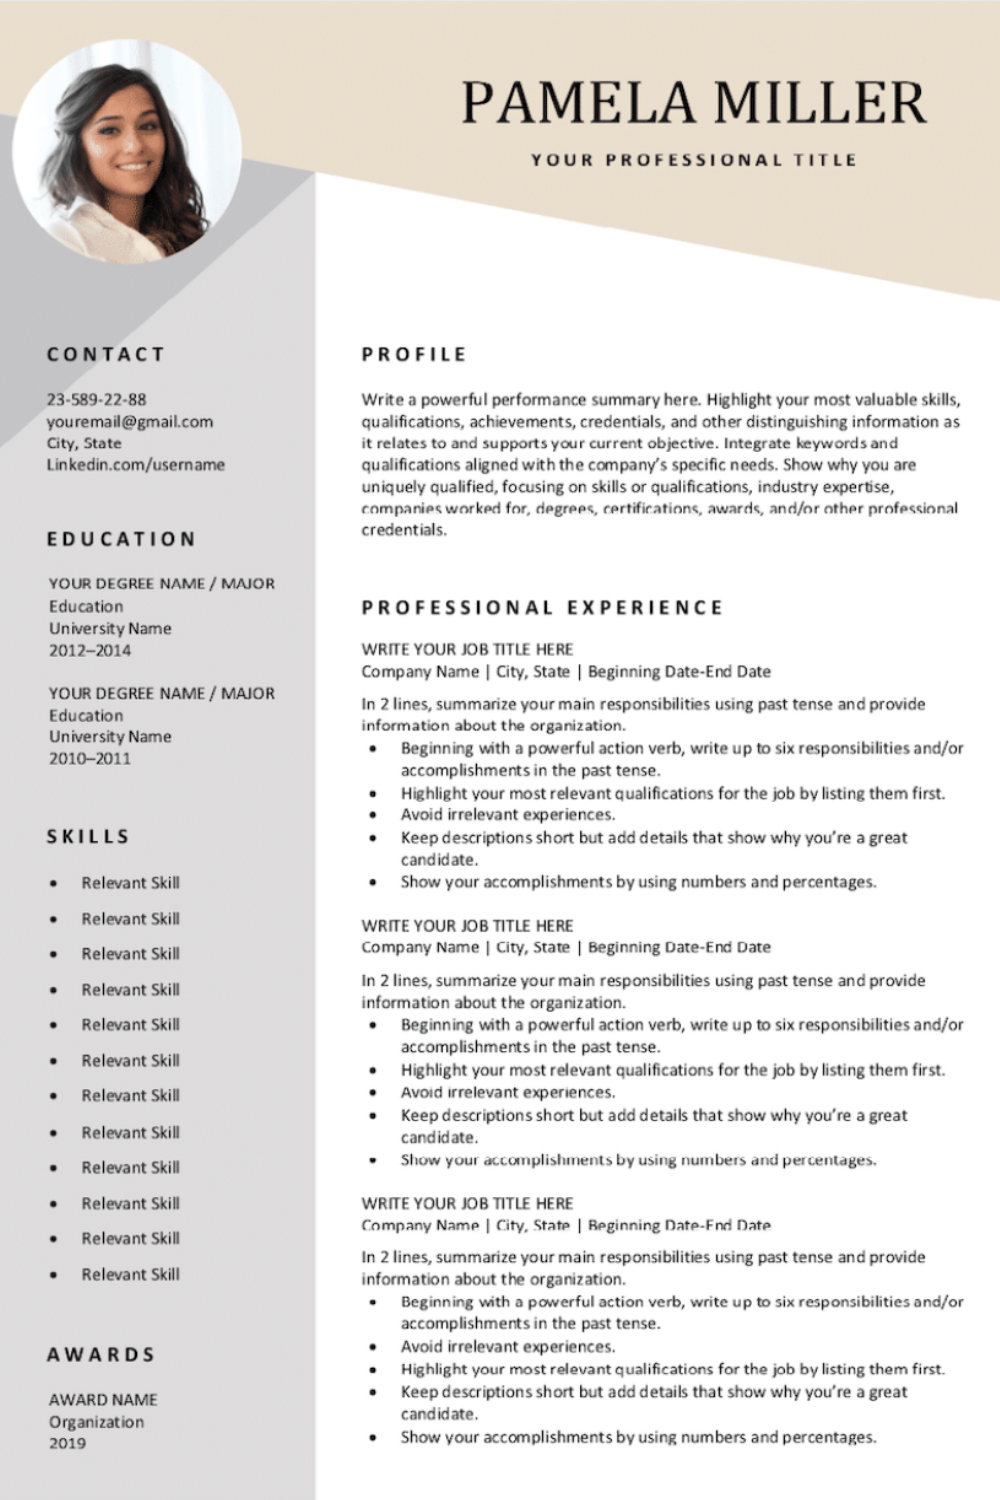 Download our completely free resume templates. Easy to ...